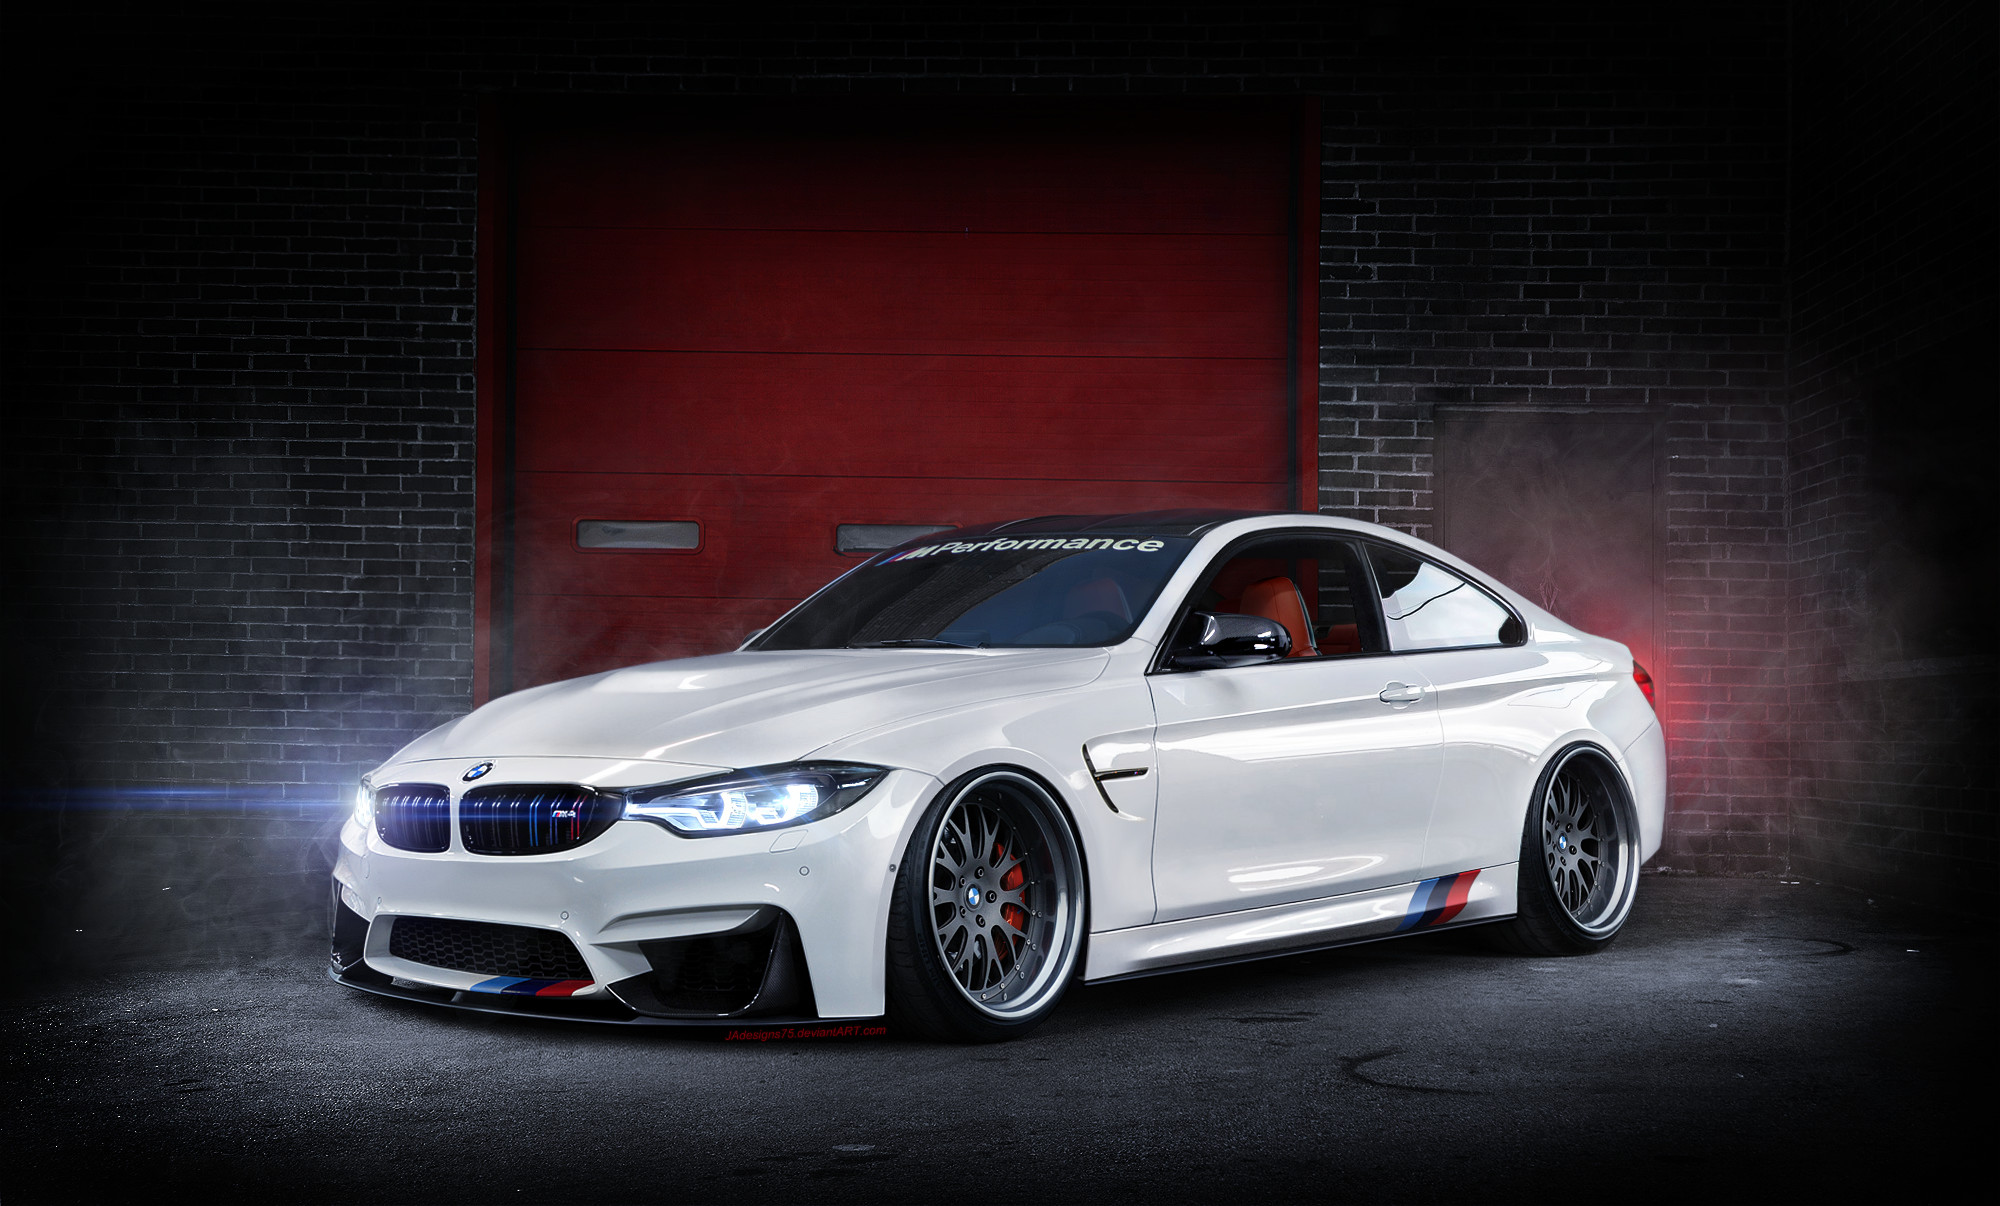 bmw f82 m4 refinished by jadesigns75 on deviantart. Black Bedroom Furniture Sets. Home Design Ideas